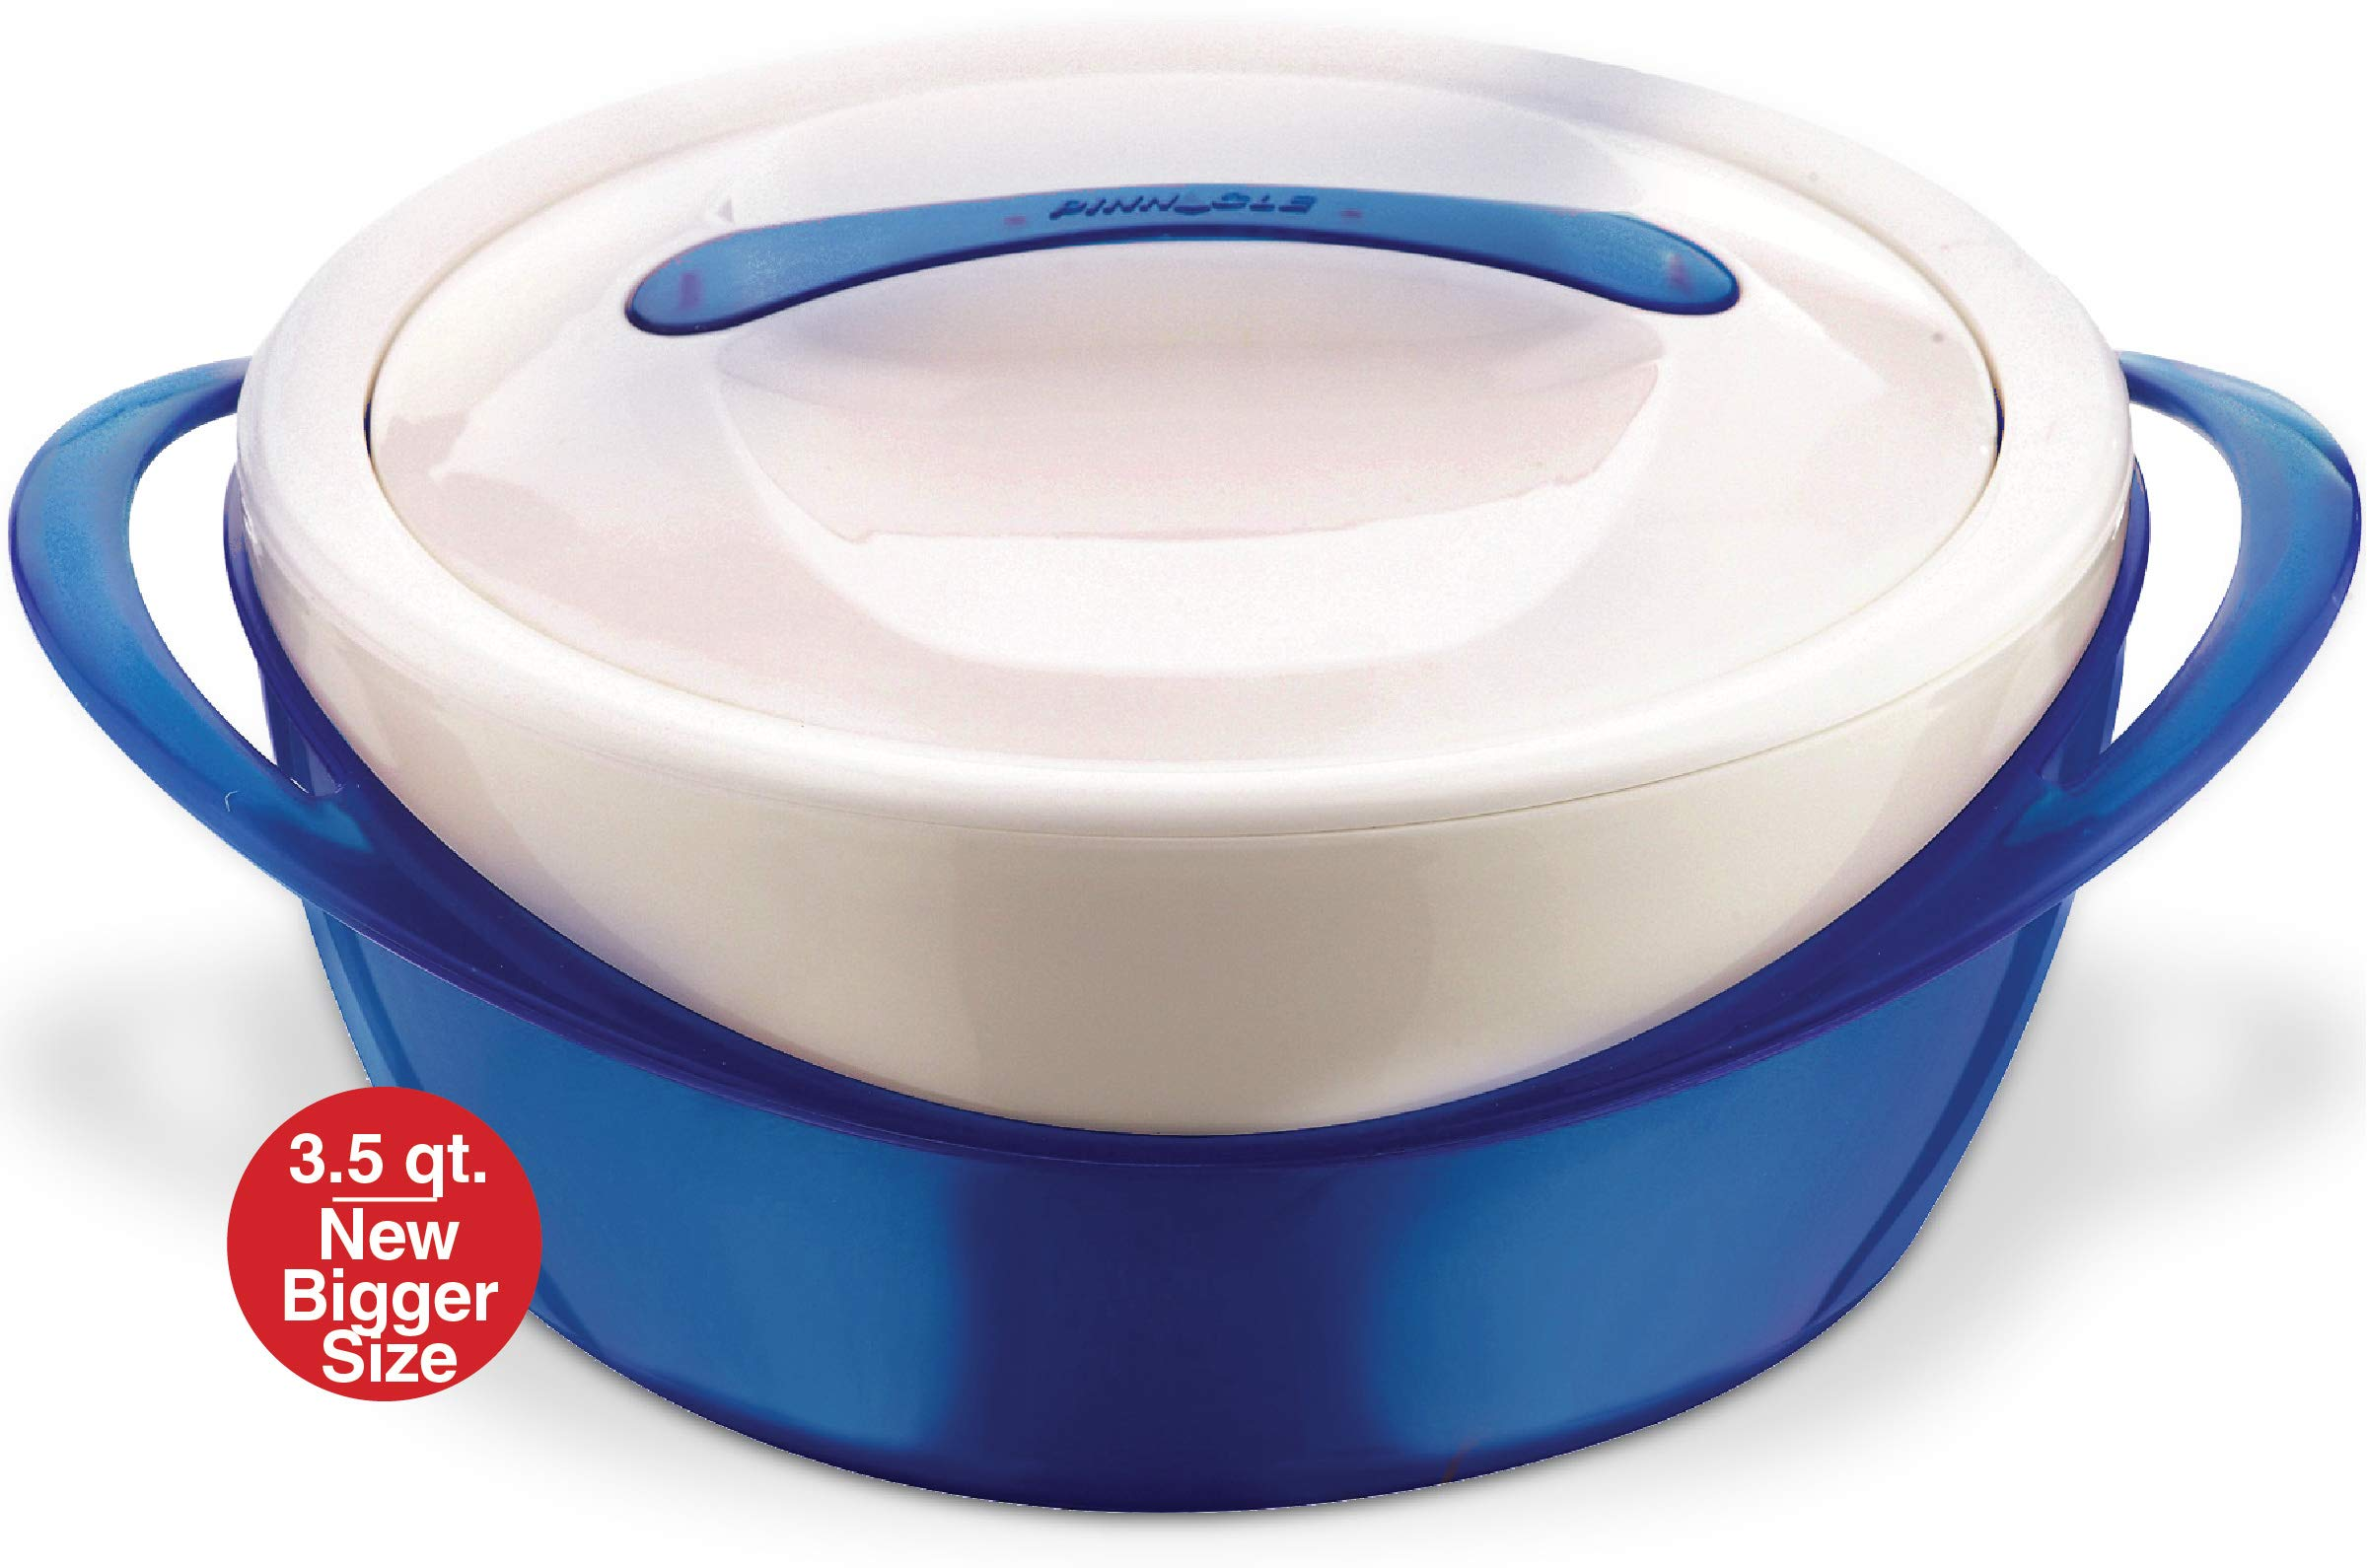 Pinnacle Casserole Dish - Large Soup and Salad Bowl - Insulated Serving Bowl With Lid (3.6 qt, Blue)